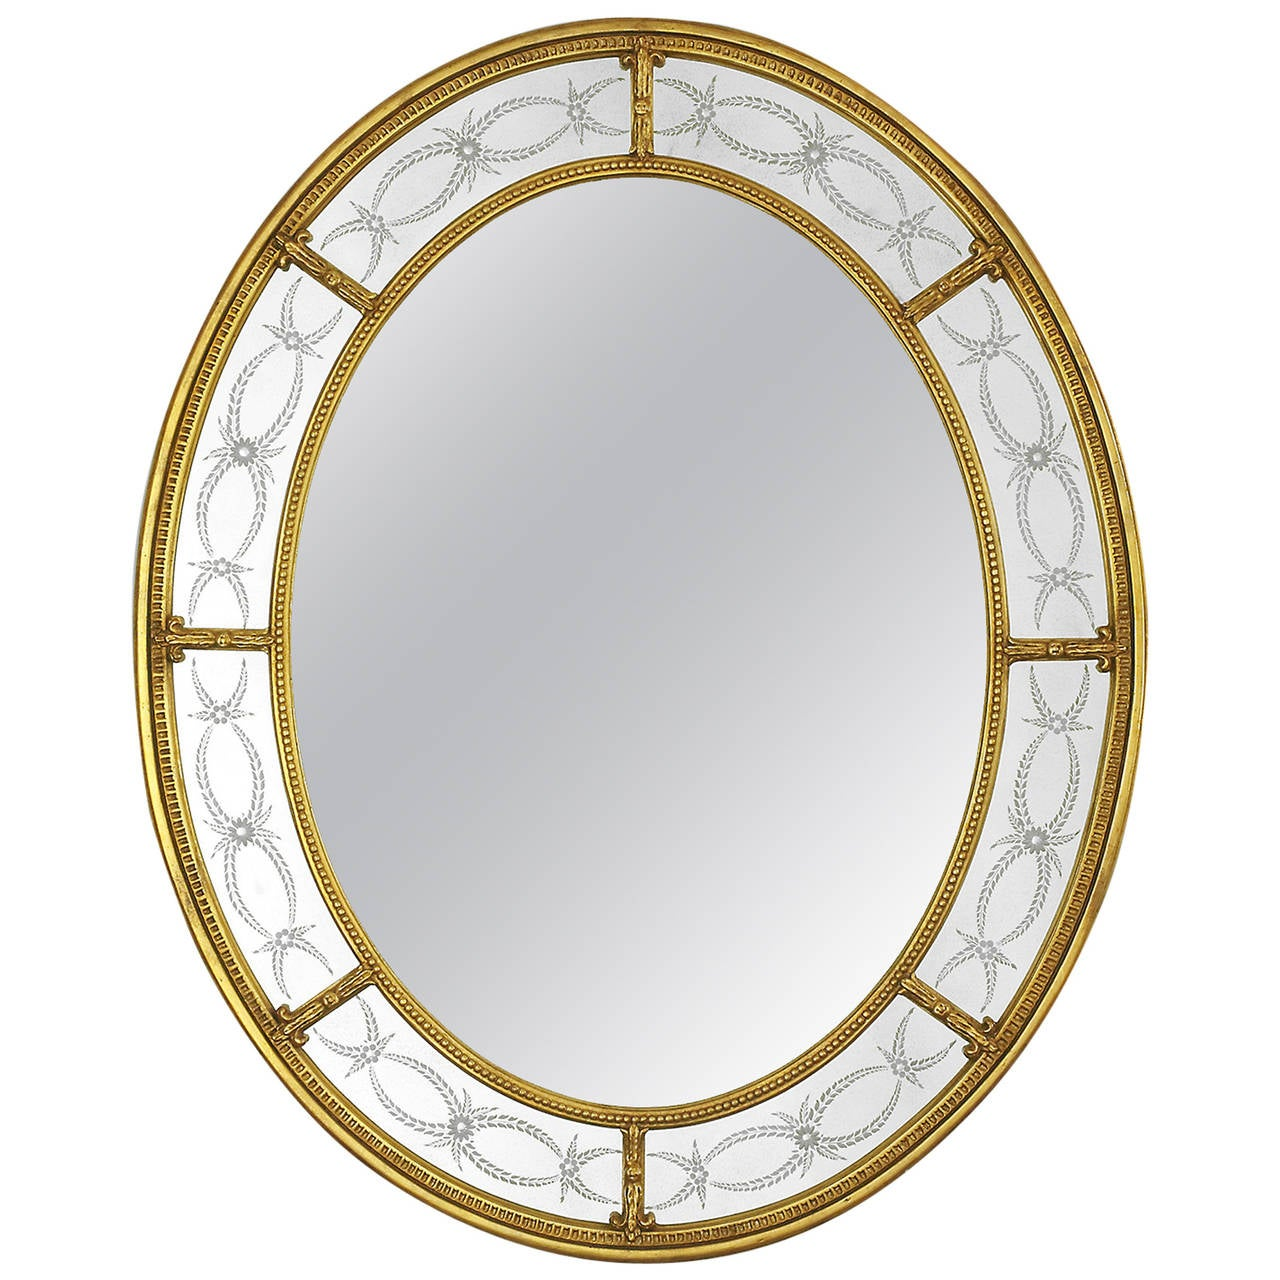 Adam style oval mirror 22 karat gold with engraved panels for Adam style mirror